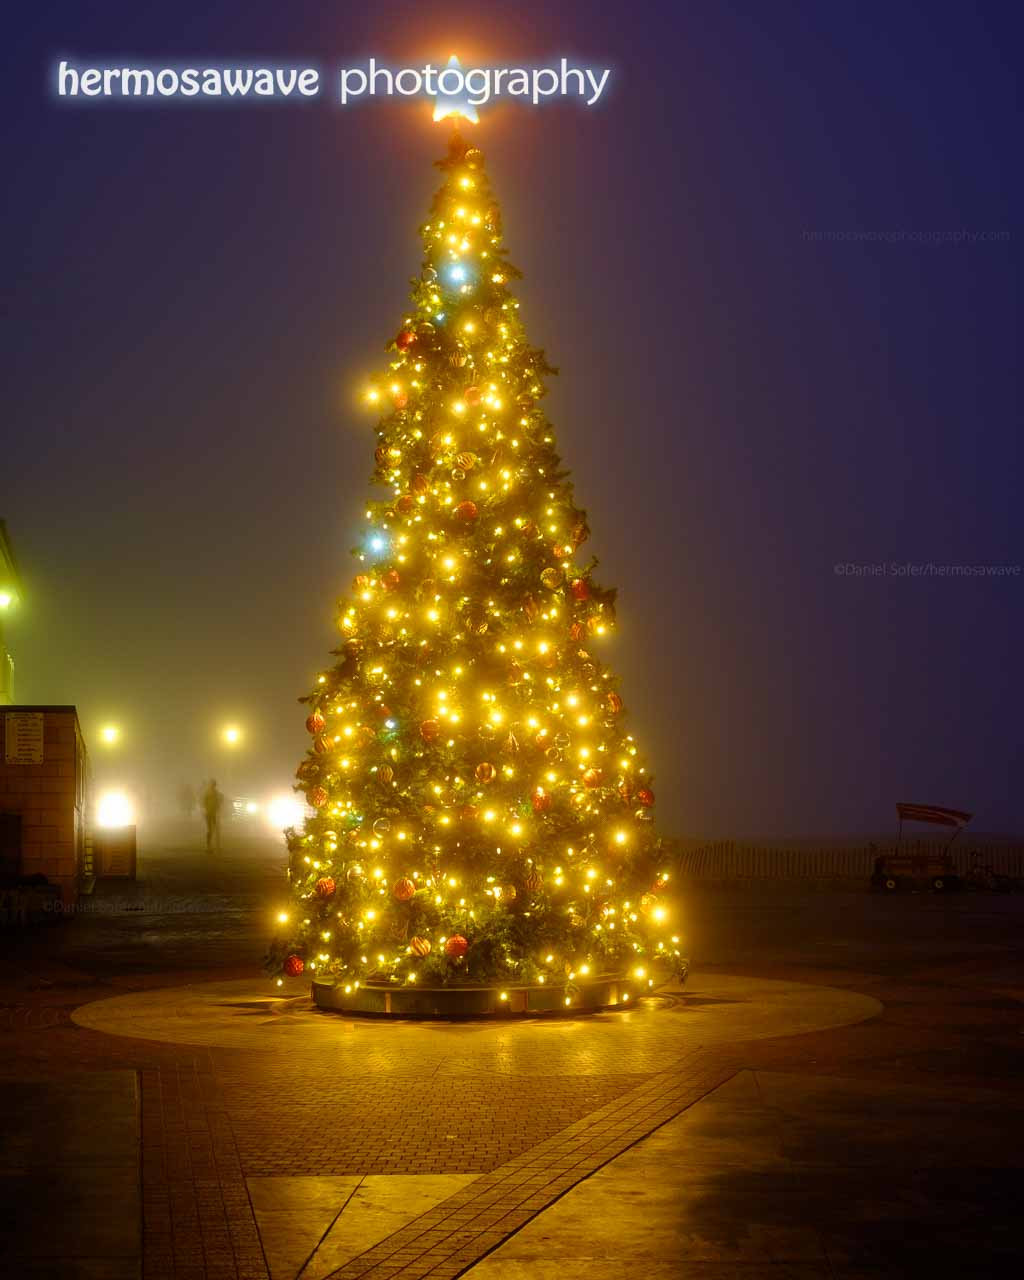 Christmas Tree in the Fog